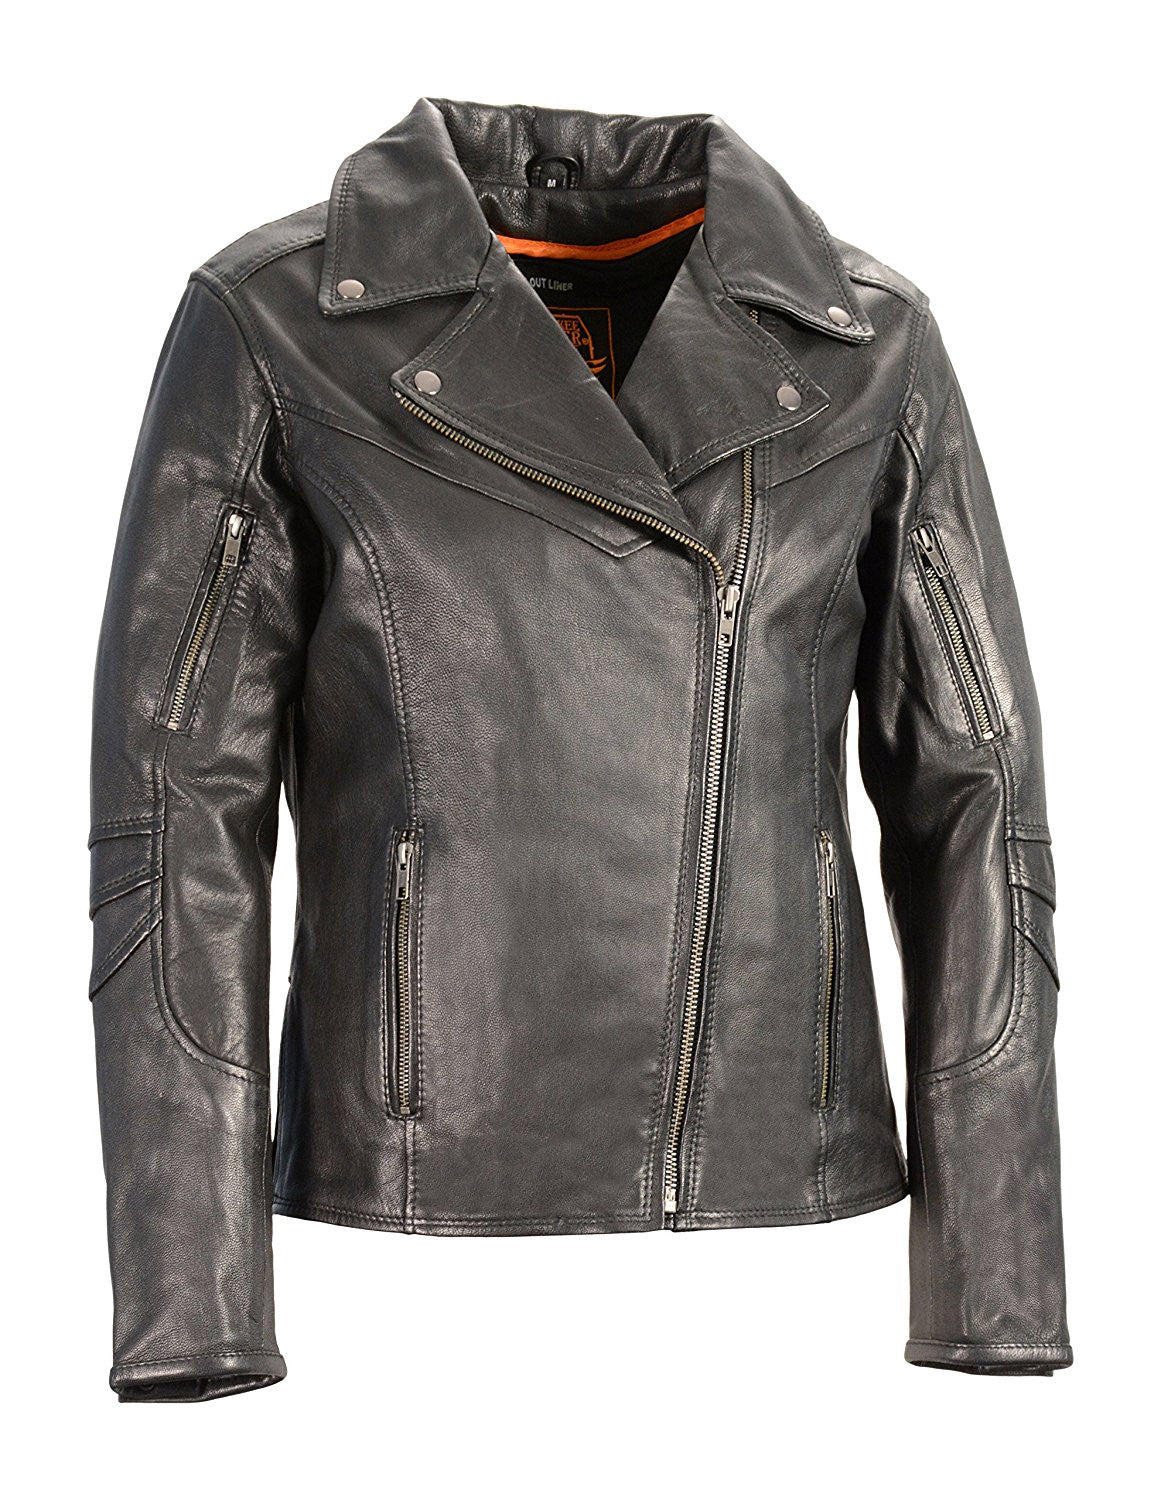 Milwaukee Leather Women's Vented Motorcycle Jacket - Maine-Line Leather - 1